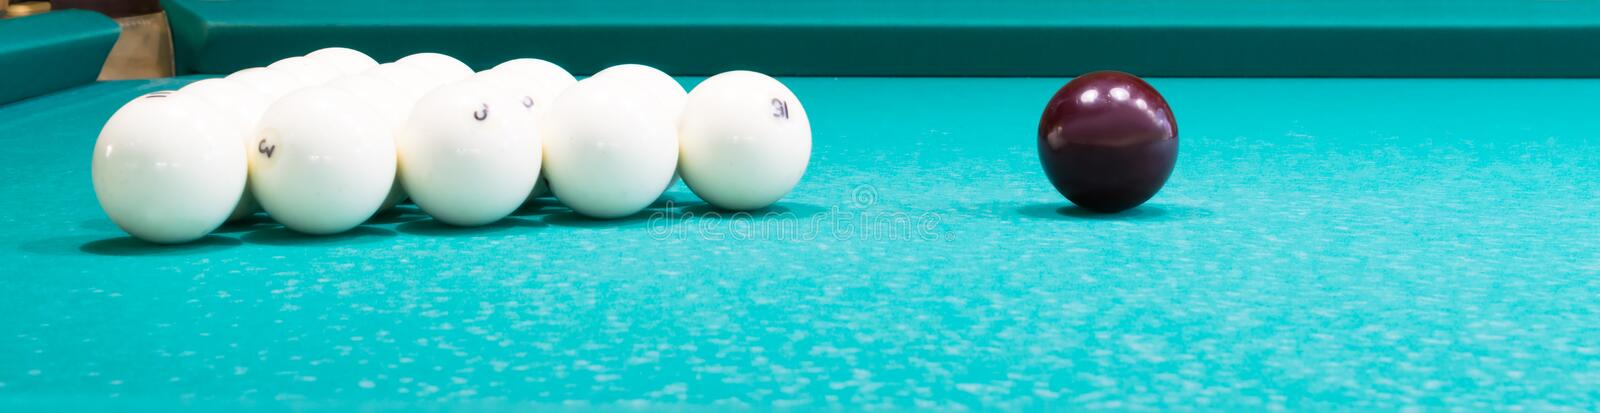 White balls for big billiards lie on a green cloth, a long photo stock photography